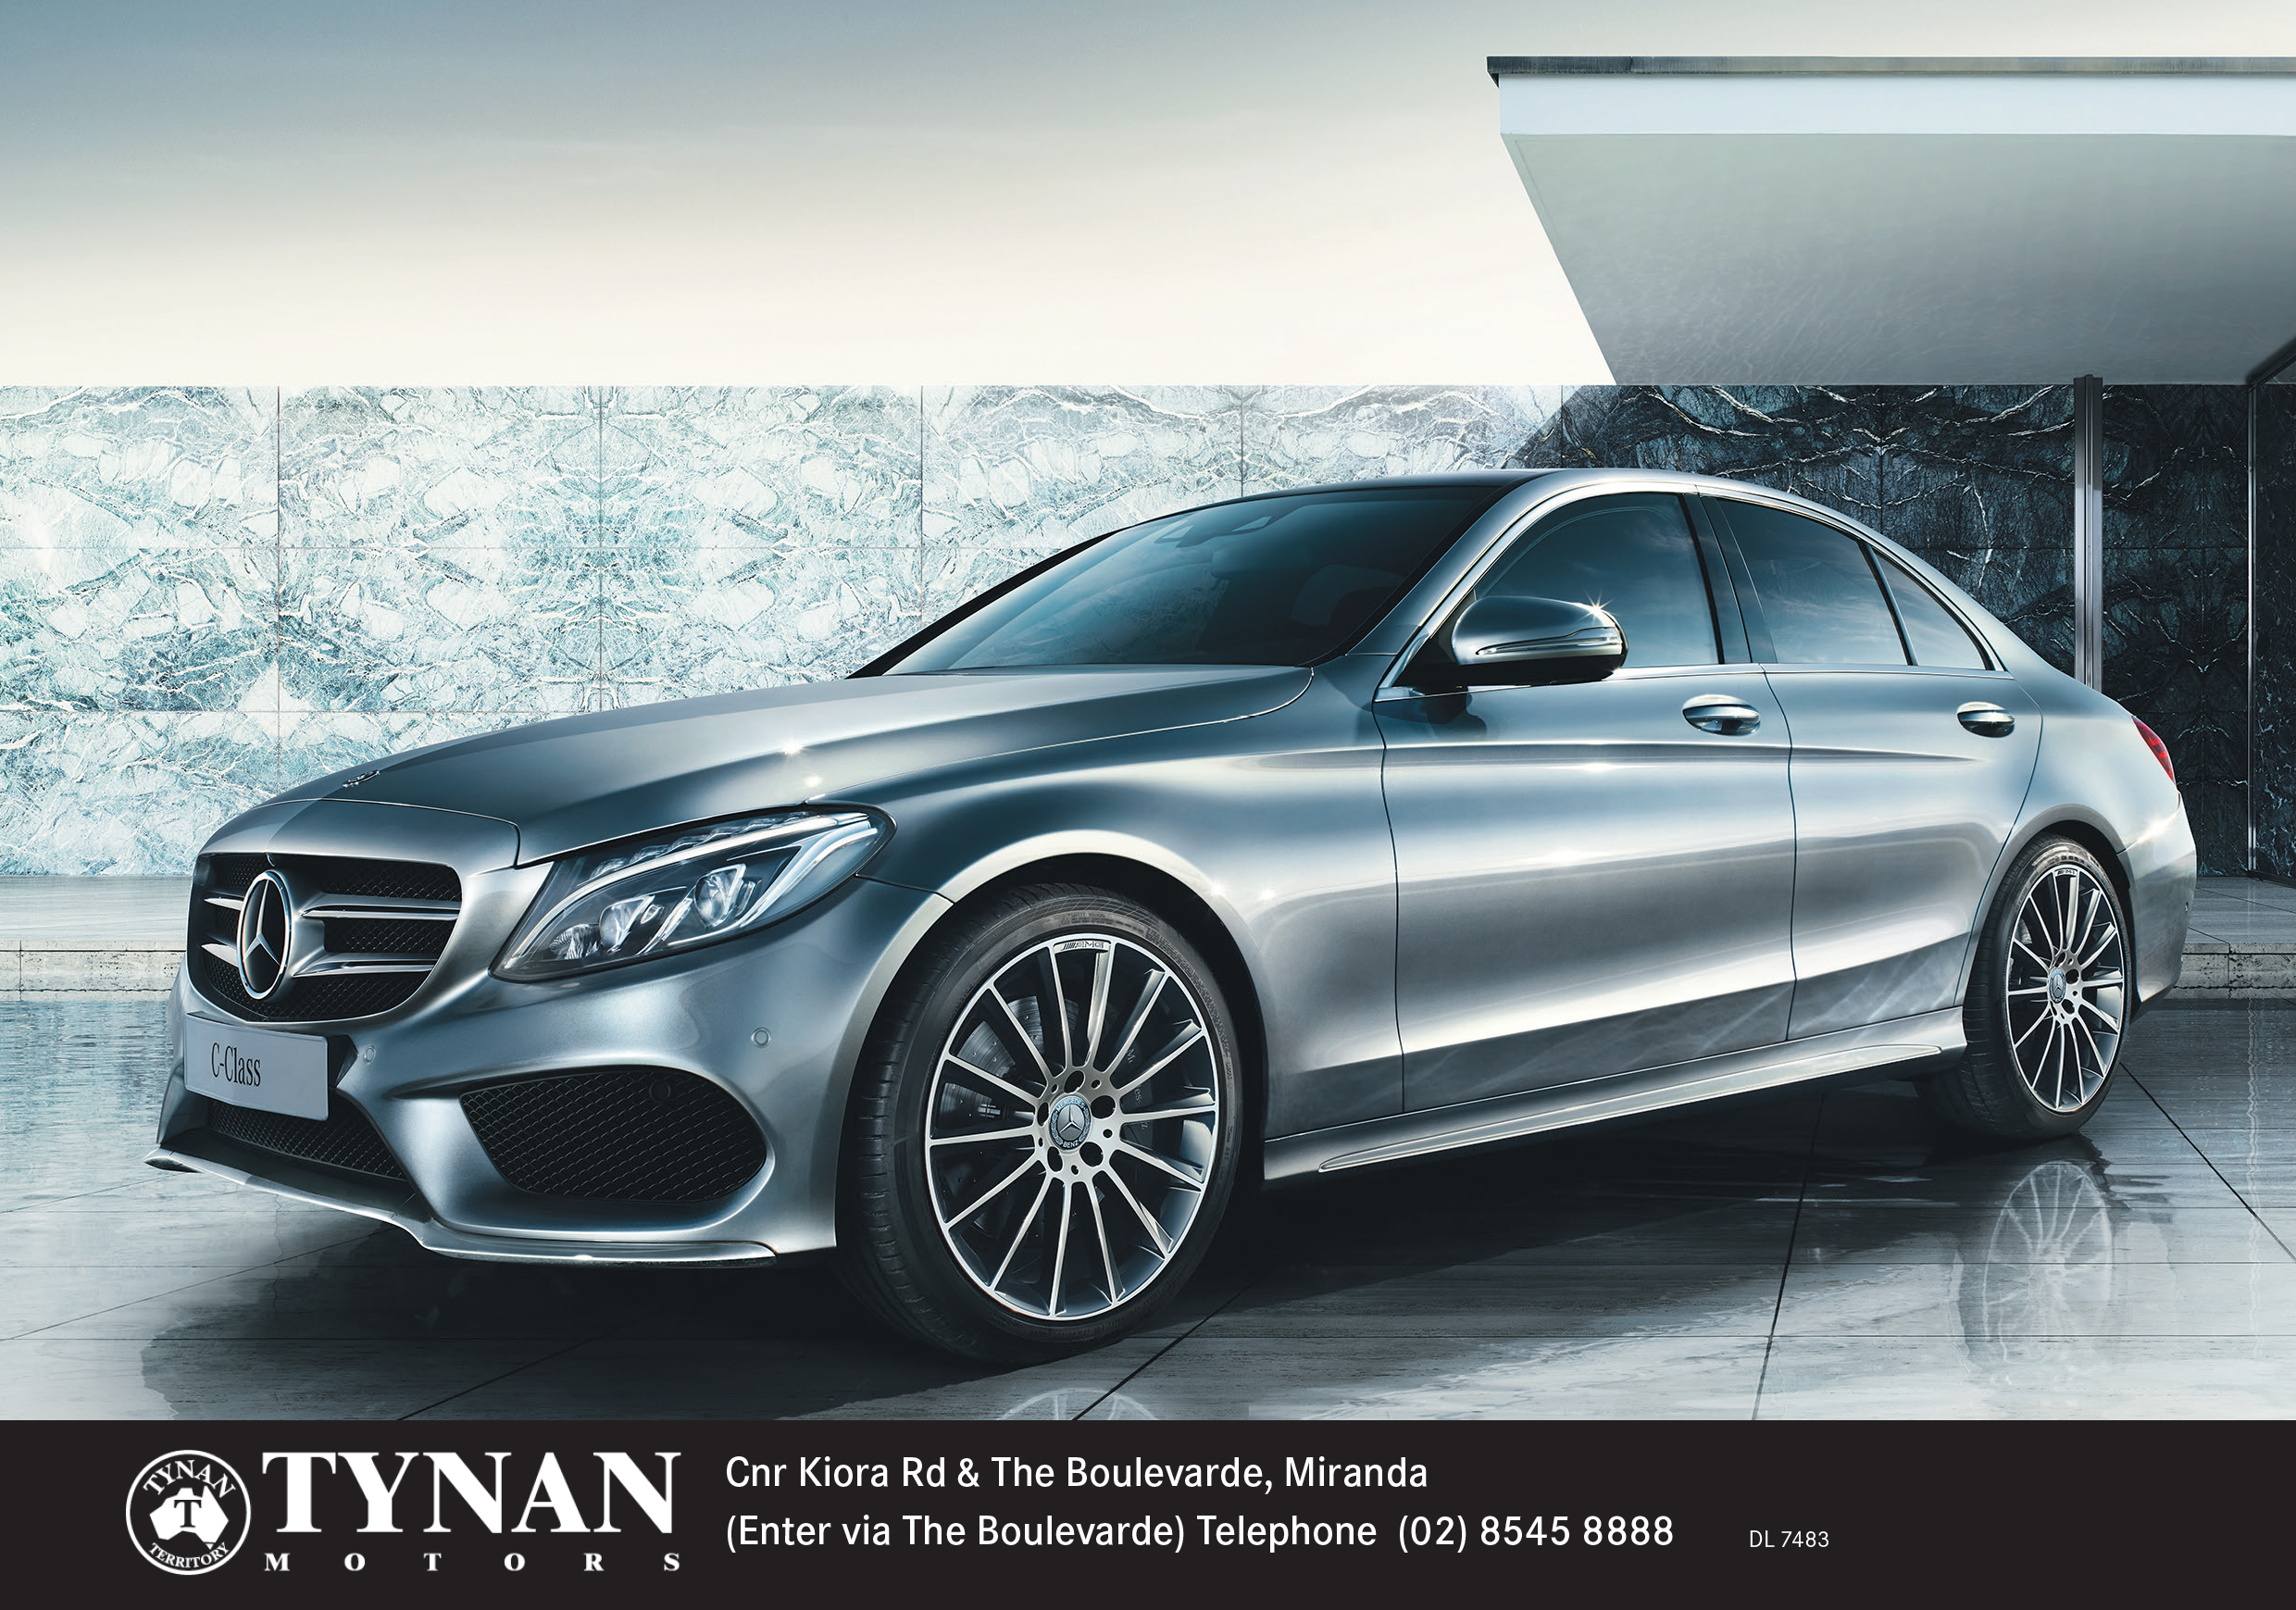 Win a luxury escape with your new mercedes benz tynan for Win a mercedes benz